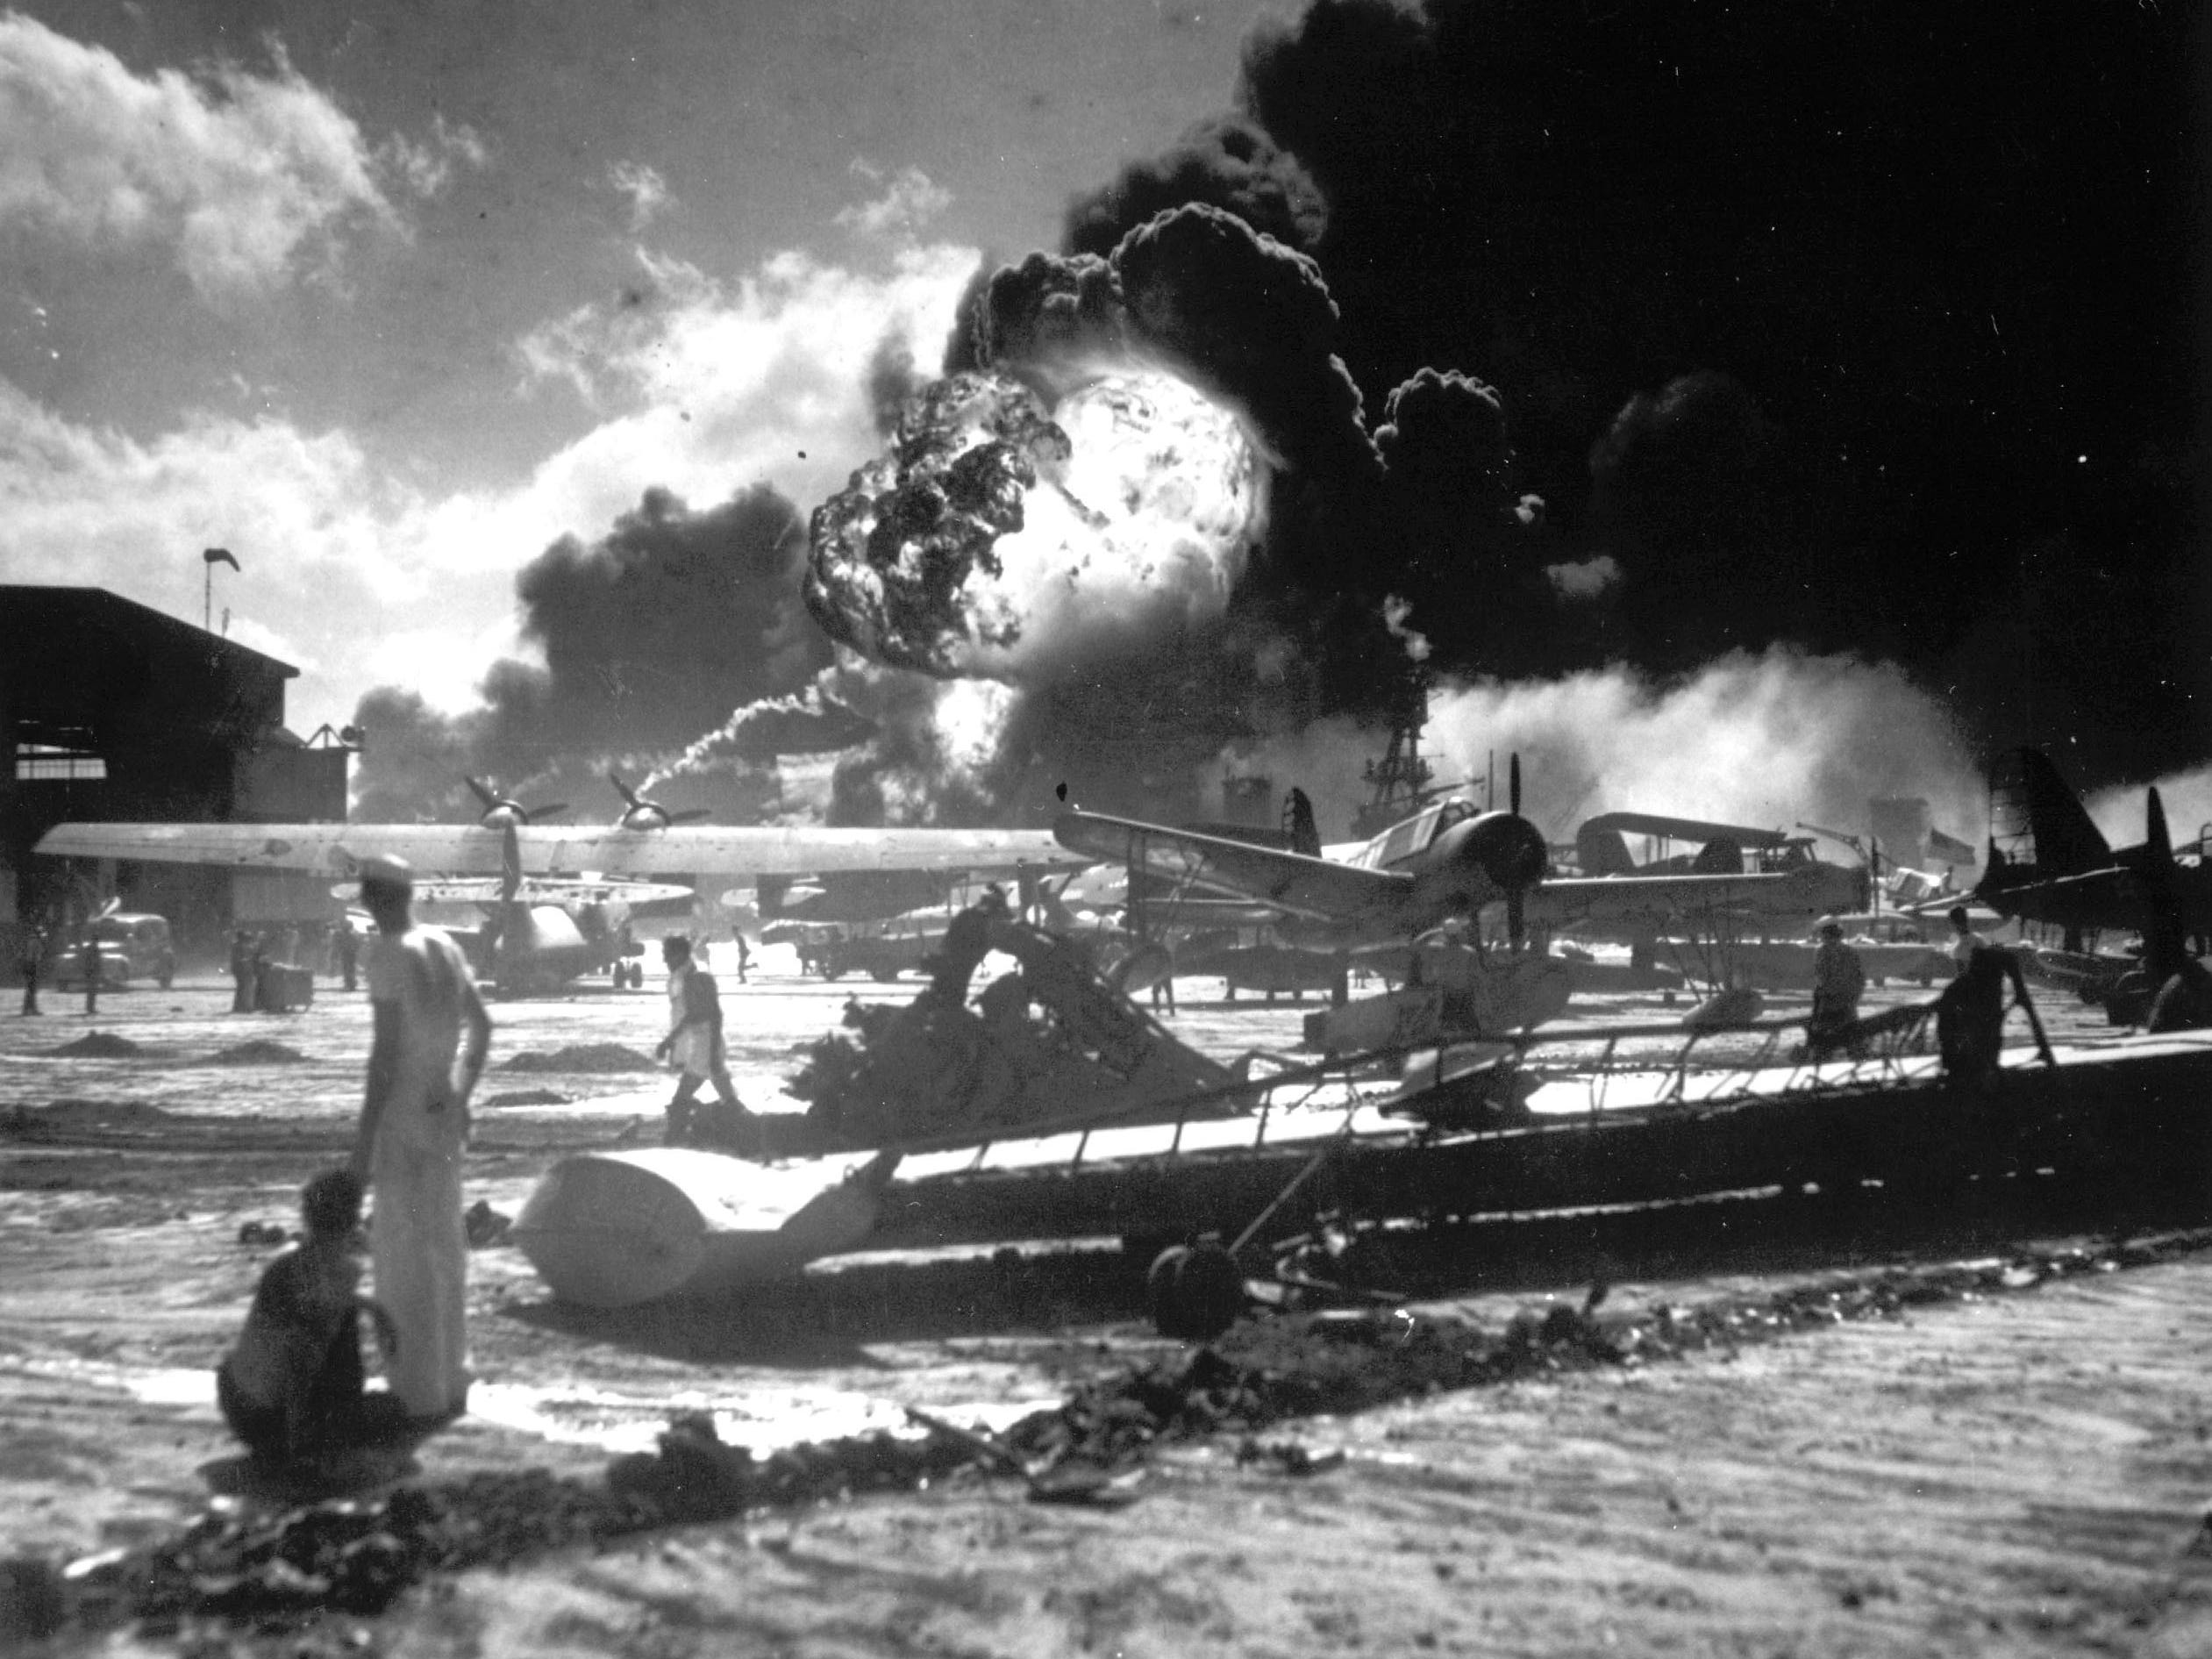 FILE - In this Dec. 7, 1941 photo provided by the U.S. Navy, sailors stand among wrecked airplanes at Ford Island Naval Air Station as they watch the explosion of the USS Shaw in the background, during the Japanese surprise attack on Pearl Harbor, Hawaii. (AP Photo/U.S. Navy)